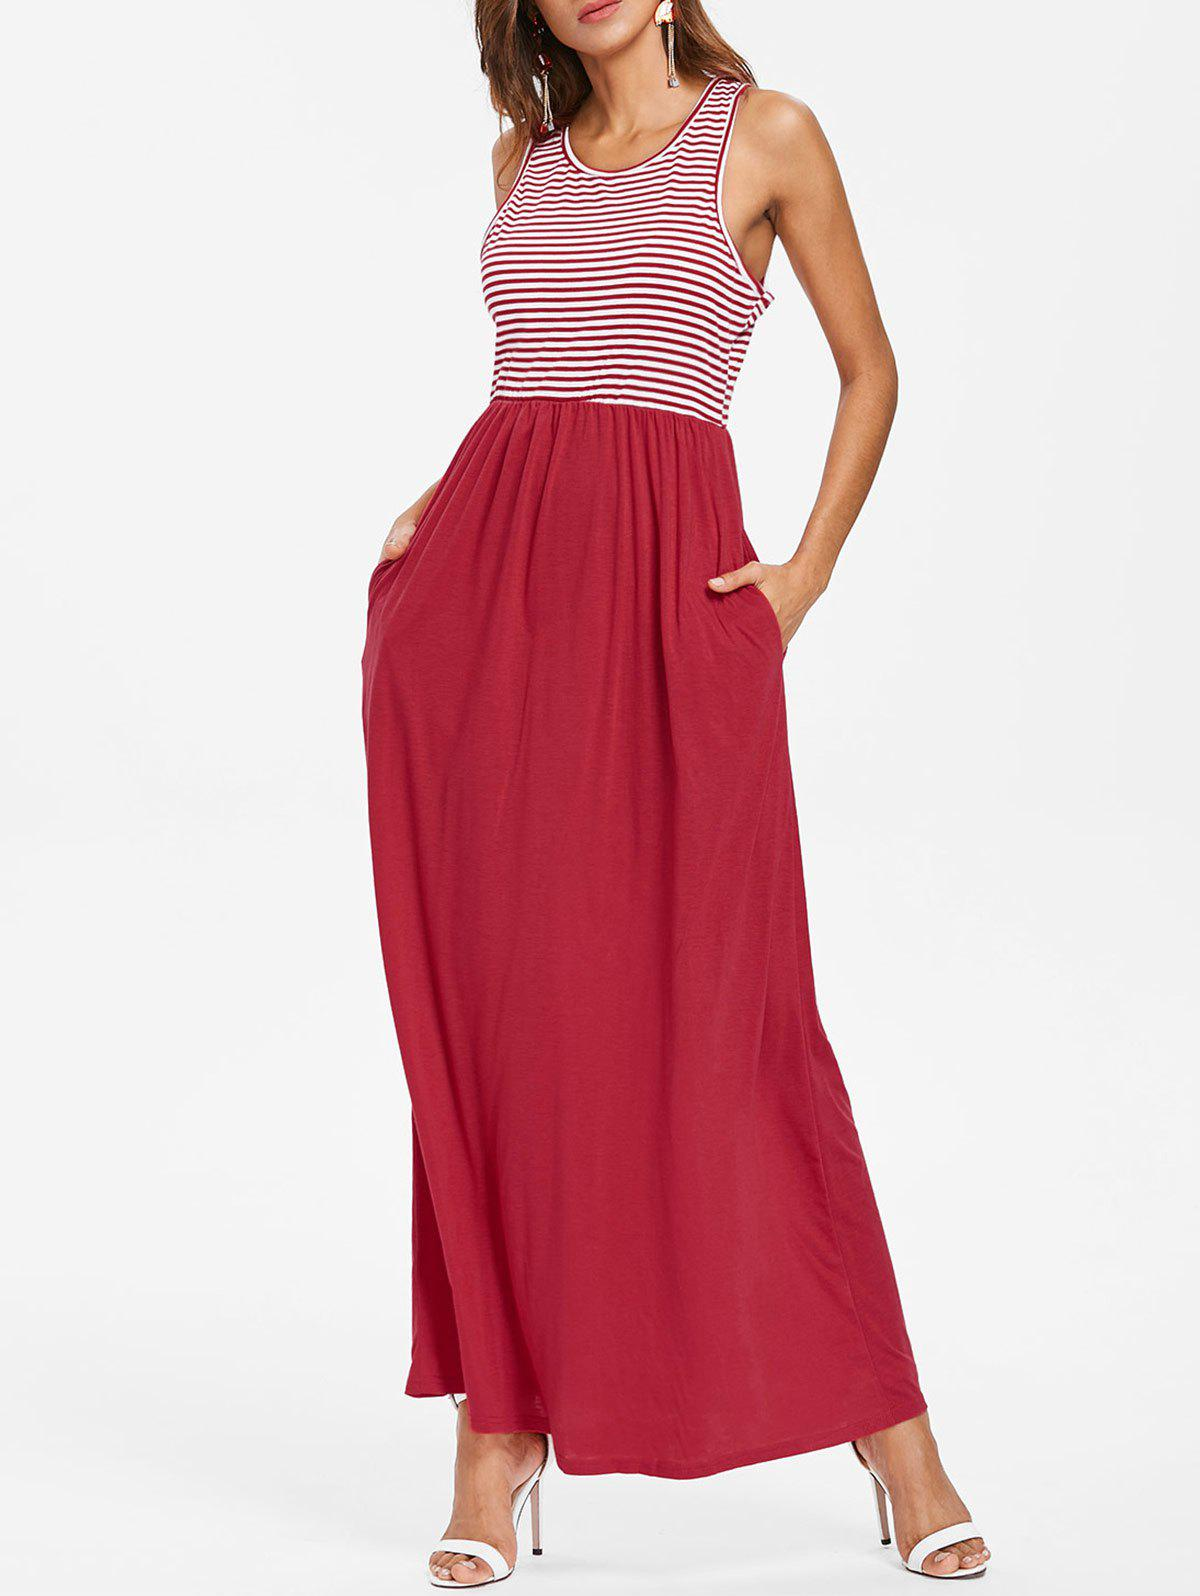 Striped Panel Maxi Dress - RED XL